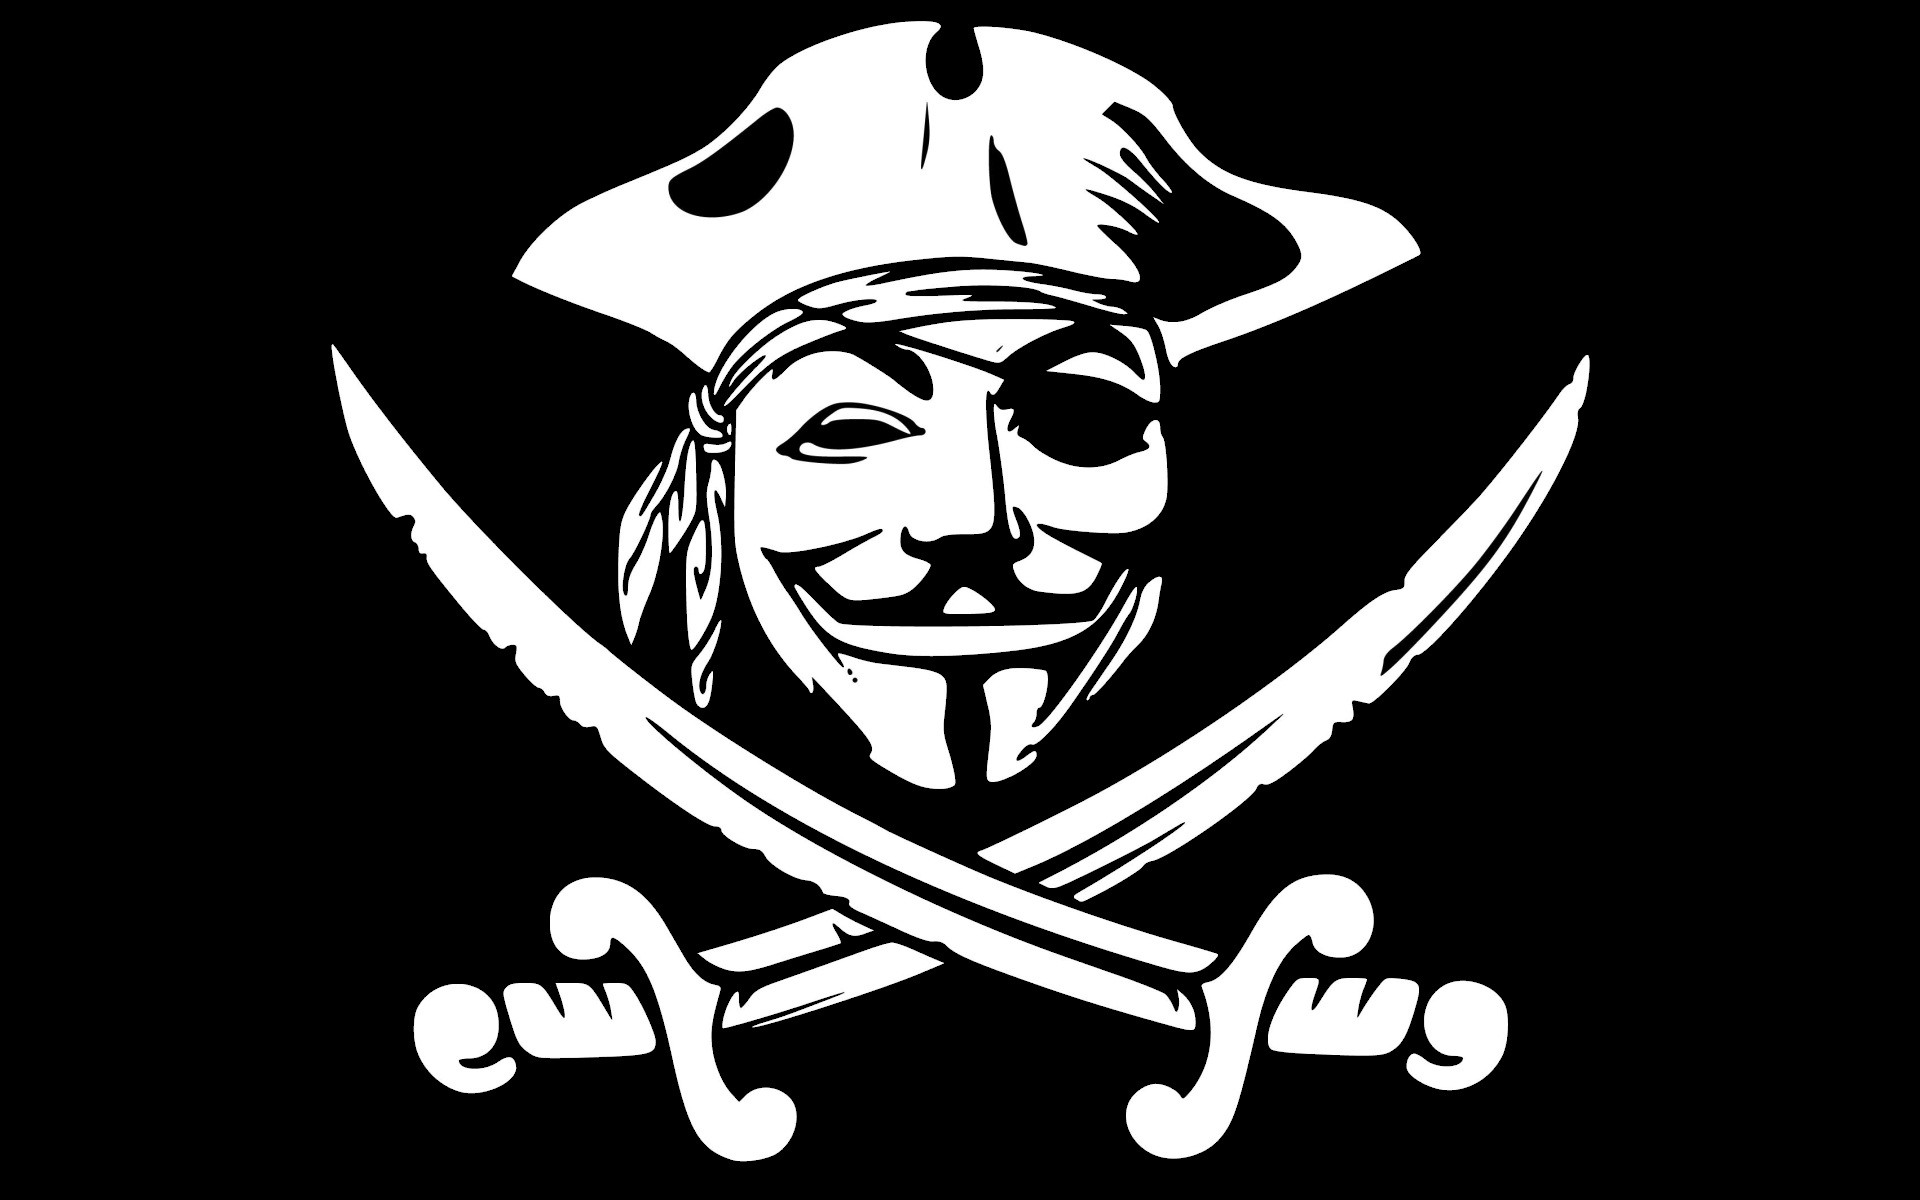 Pirate Flag Wallpapers 68+ images